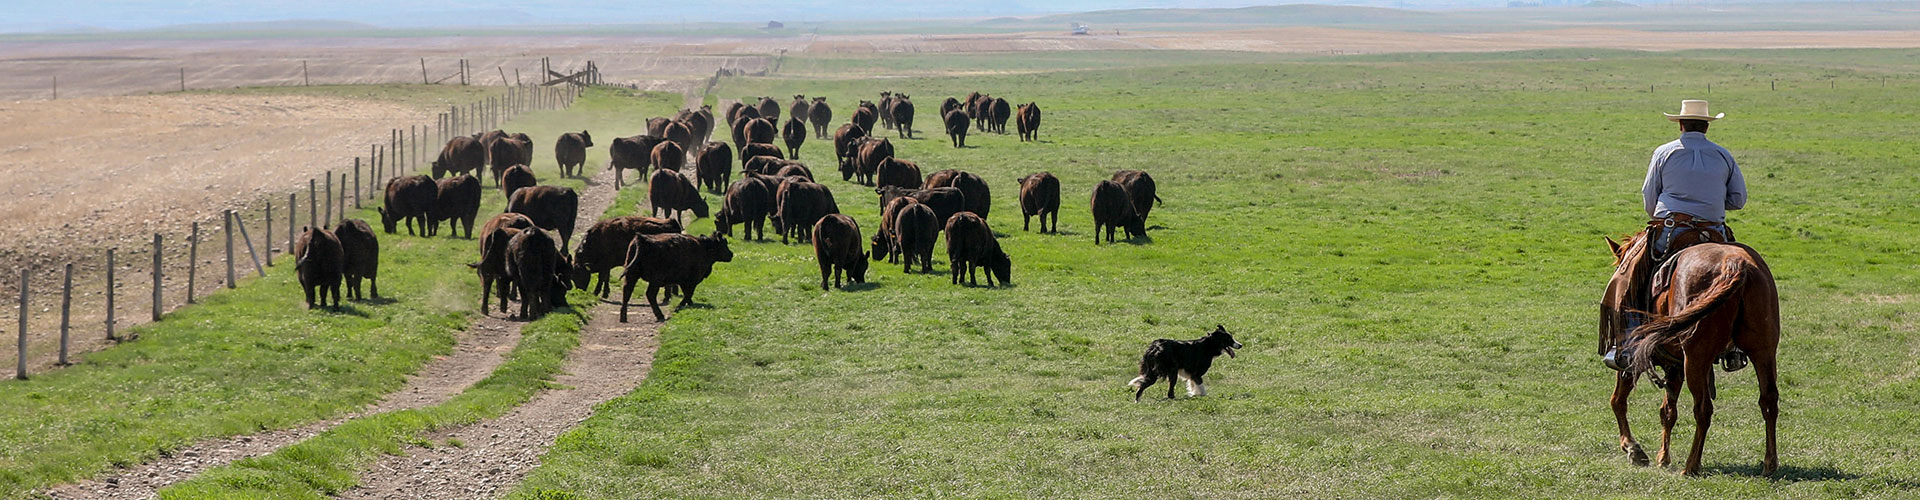 Rancher and dog herding Angus cattle - At the Table The Code